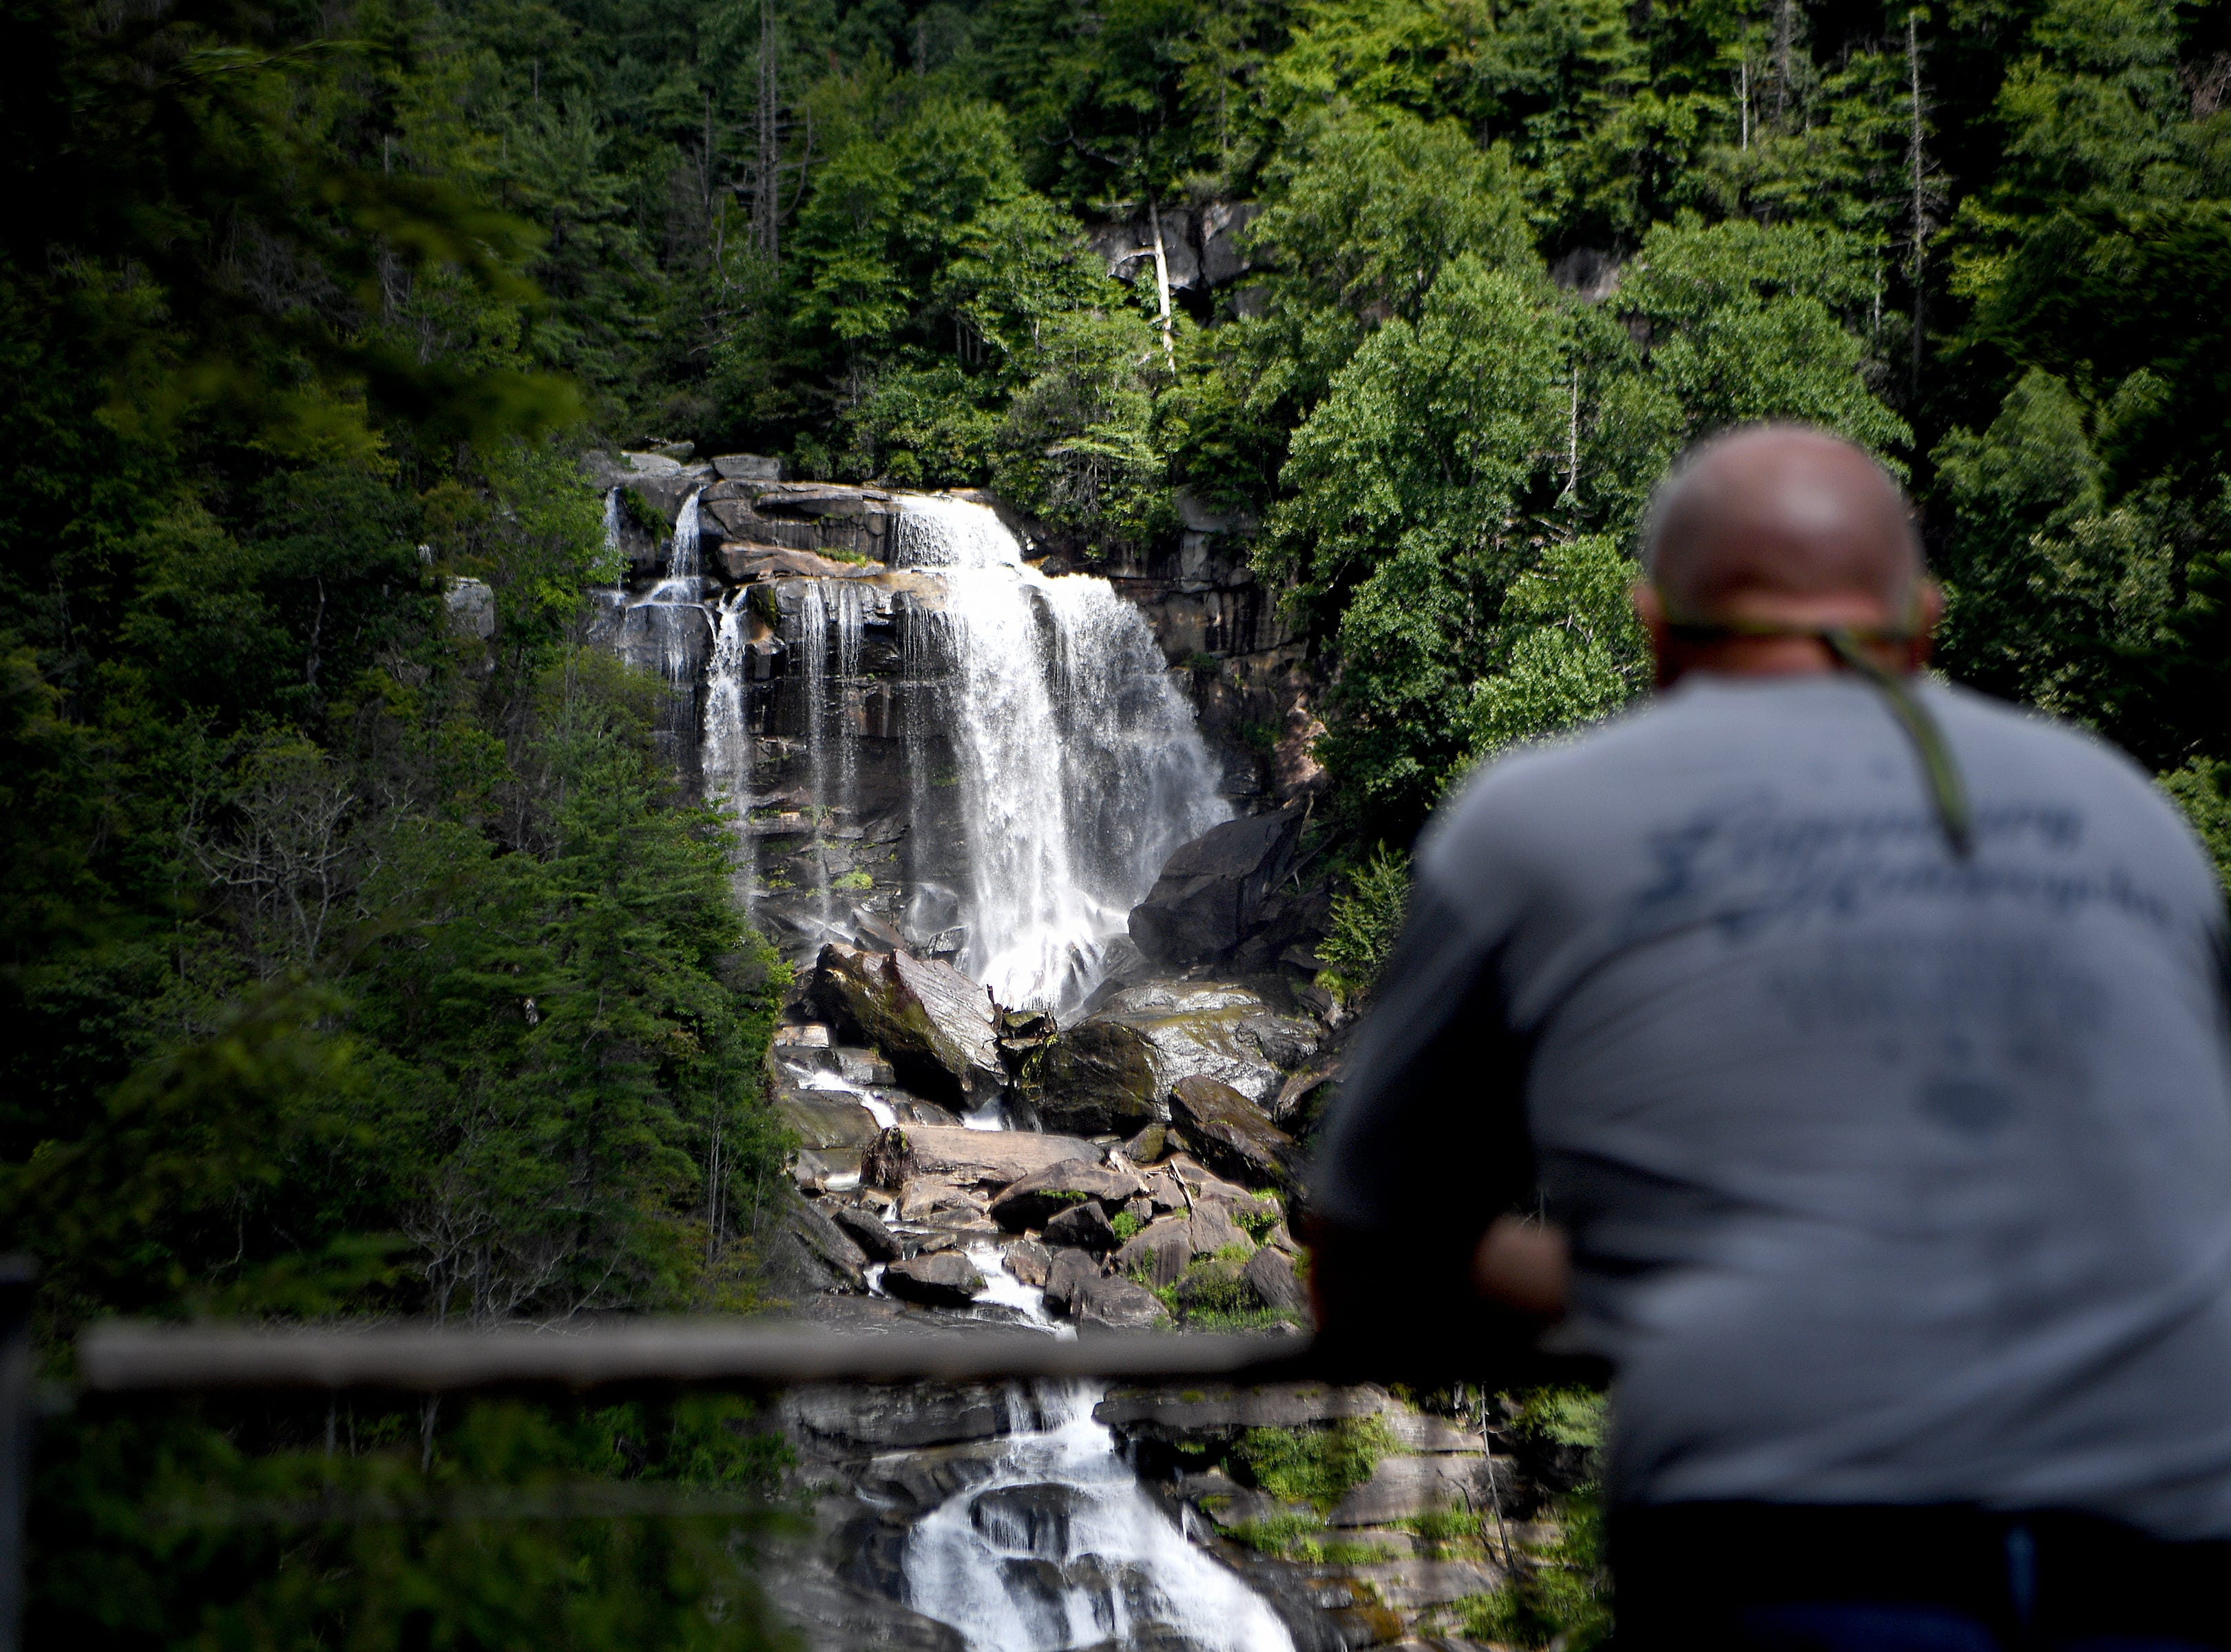 Bille Moore, of Myrtle Beach, South Carolina, takes in Whitewater Falls in the Nantahala National Forest from the observation deck on Wednesday, July 25, 2018. The waterfall is the highest in the East at more than 400 feet. It is also one of the most deadly. A least 13 people have died at the falls since 1995.